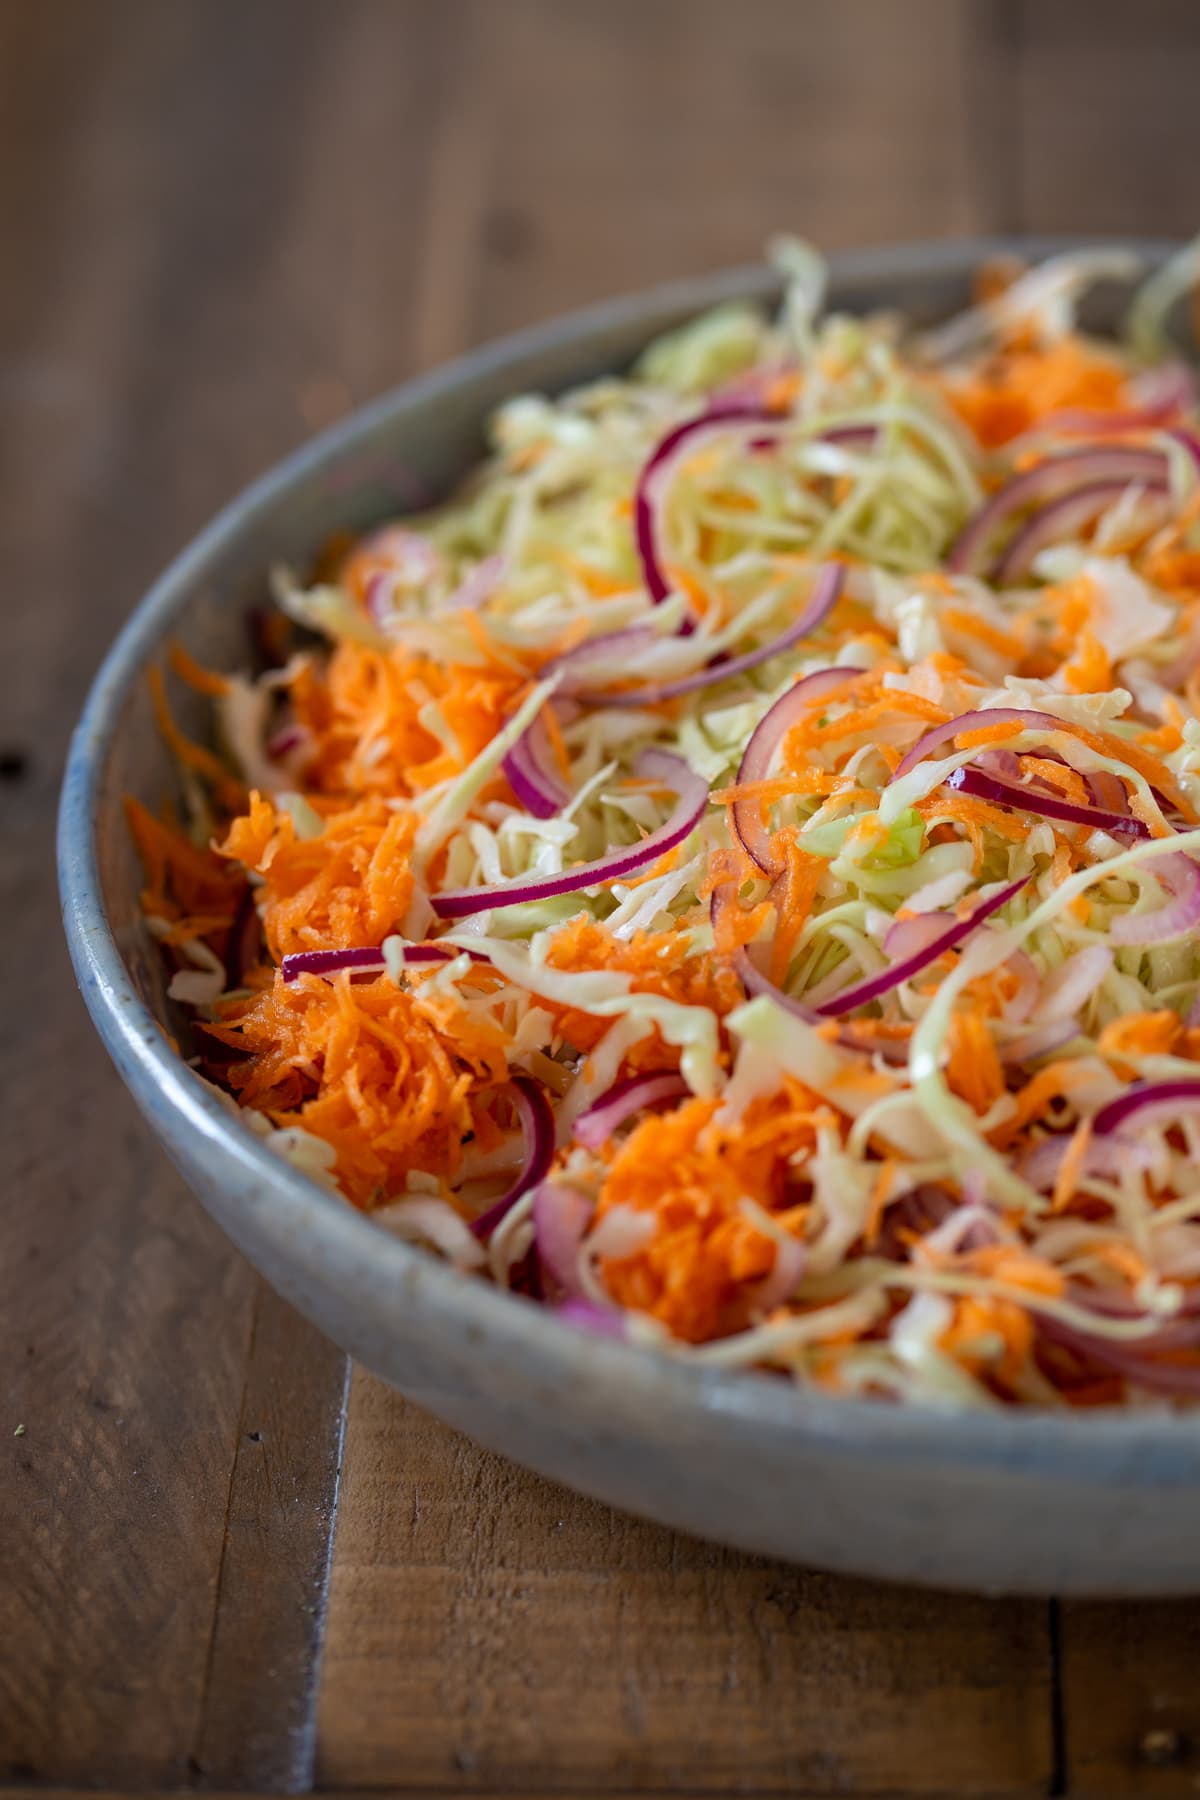 Slaw resting with the condiment.